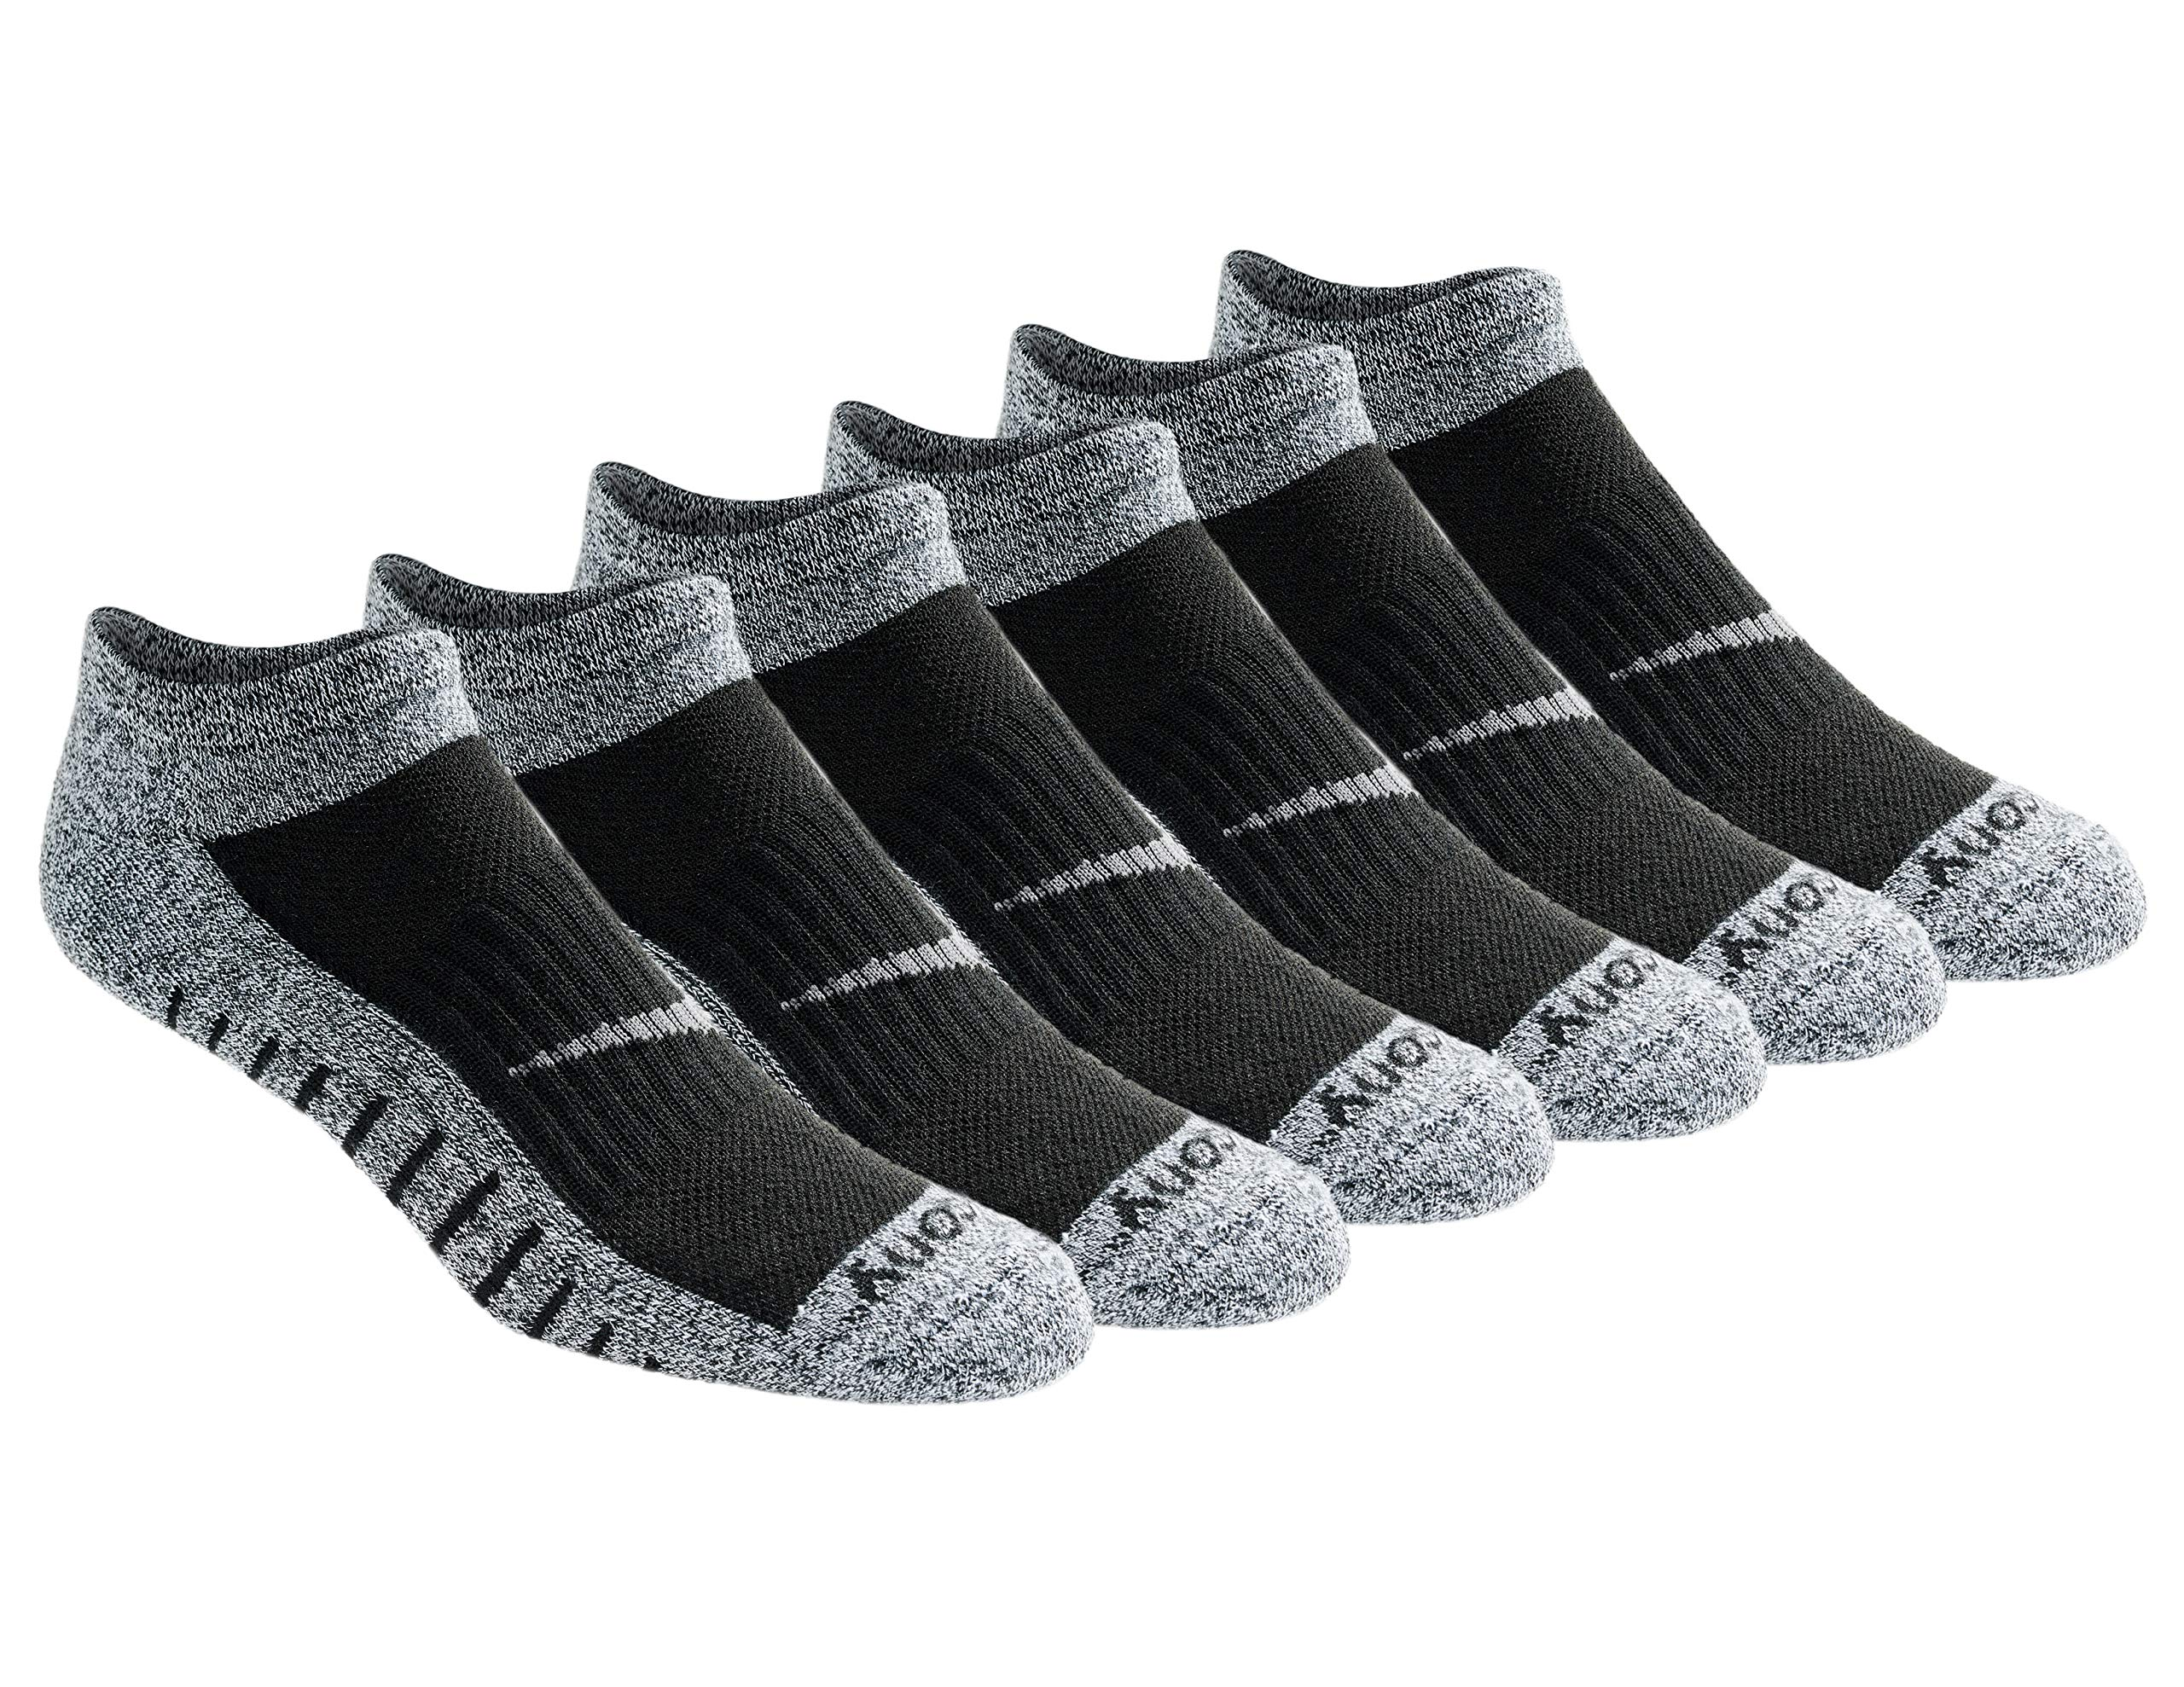 Saucony Men's Multi Pack Mesh Ventilating  Performance Comfort Fit No-Show Socks, Black/White Assorted (6 Pack), Shoe Size: 8-12 by Saucony